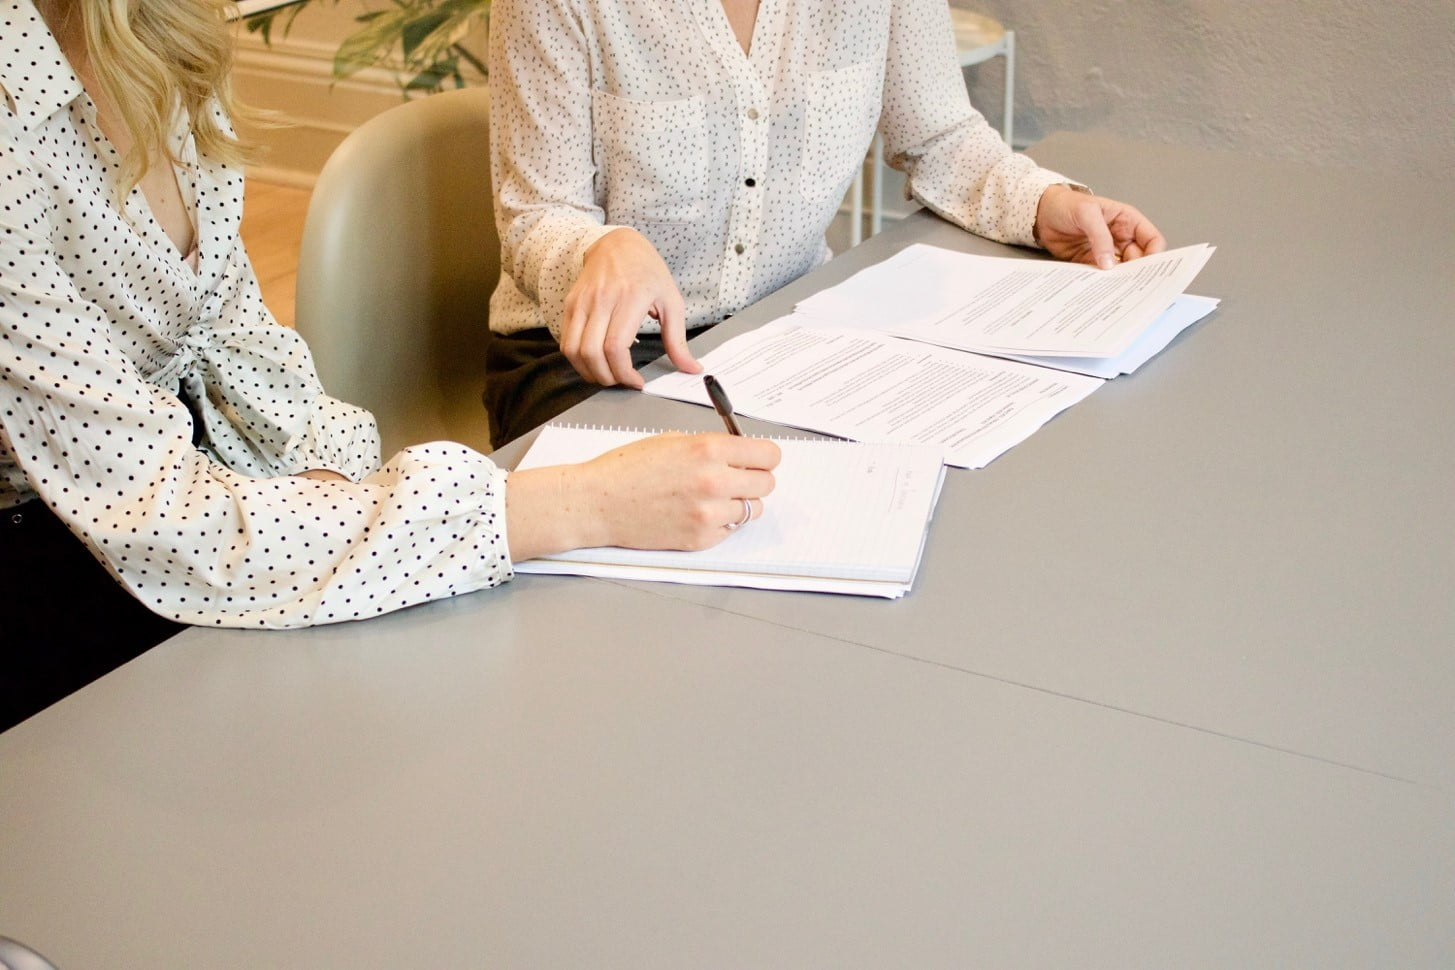 Tips for an Infallible Commercial Contract